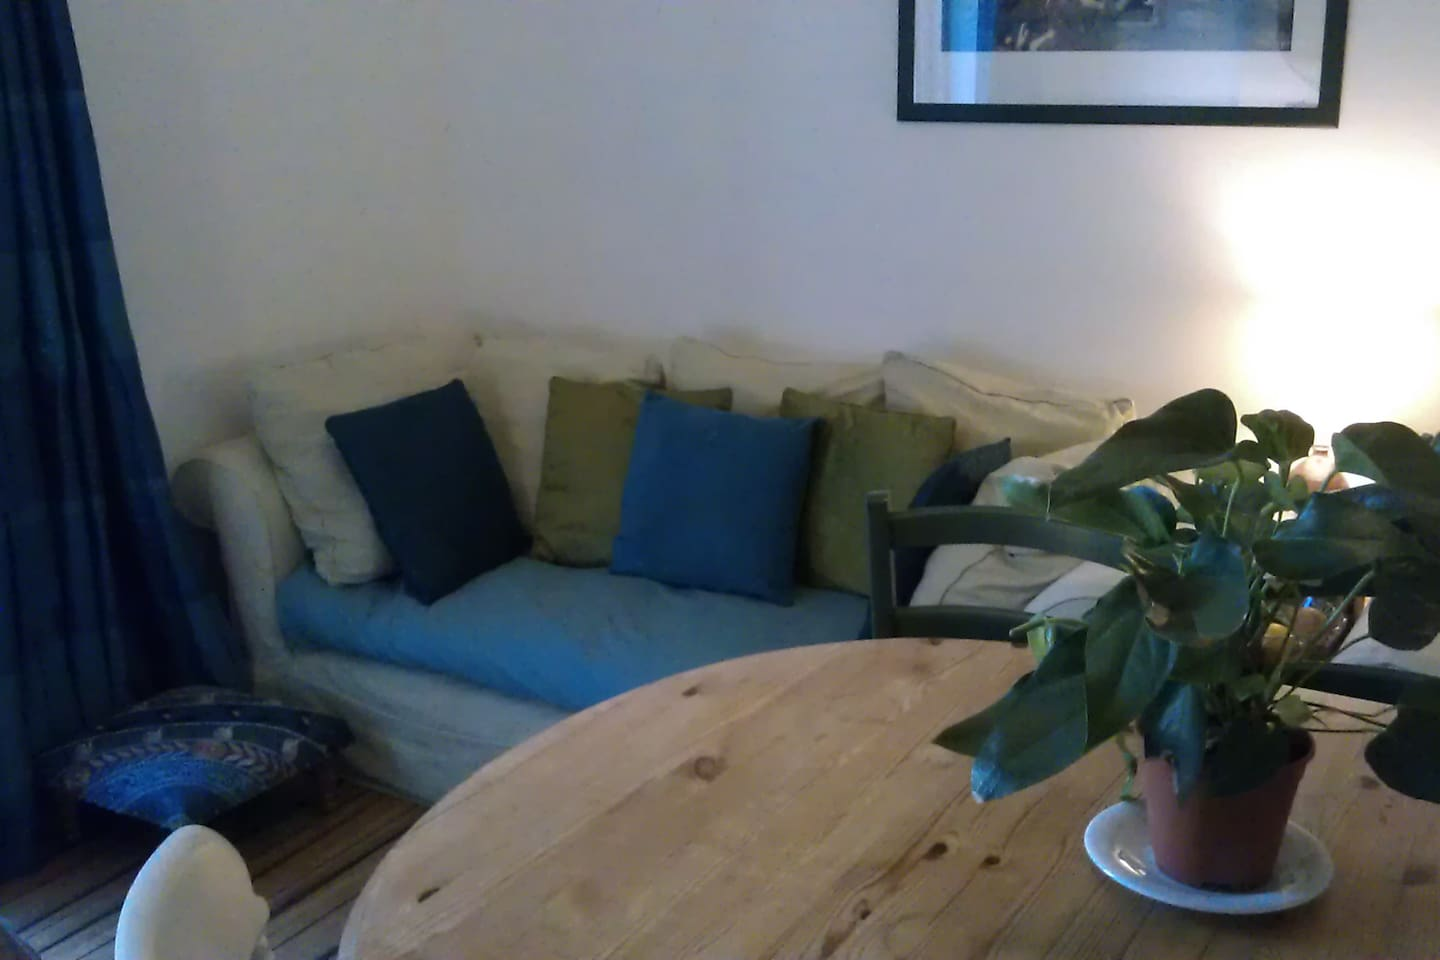 Five miles from Cardiff Centre. Shared living space.